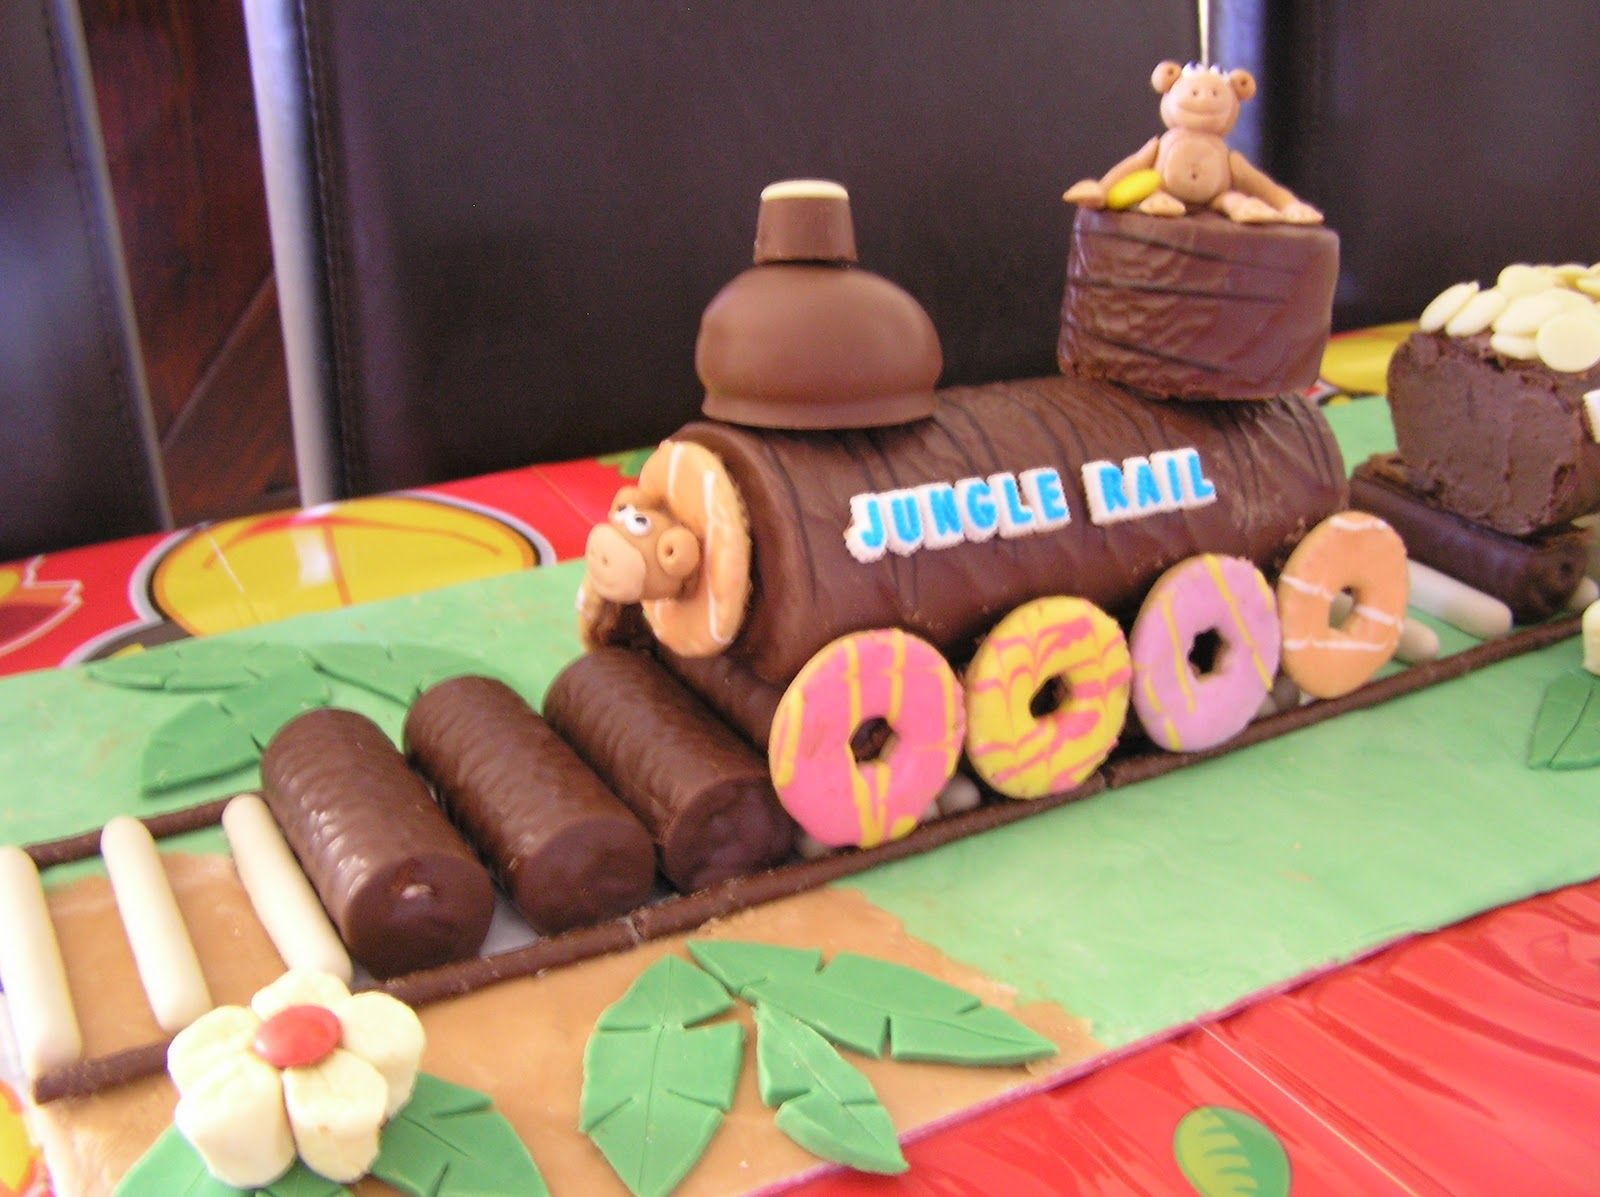 Image Result For Train Birthday Cake Swiss Roll